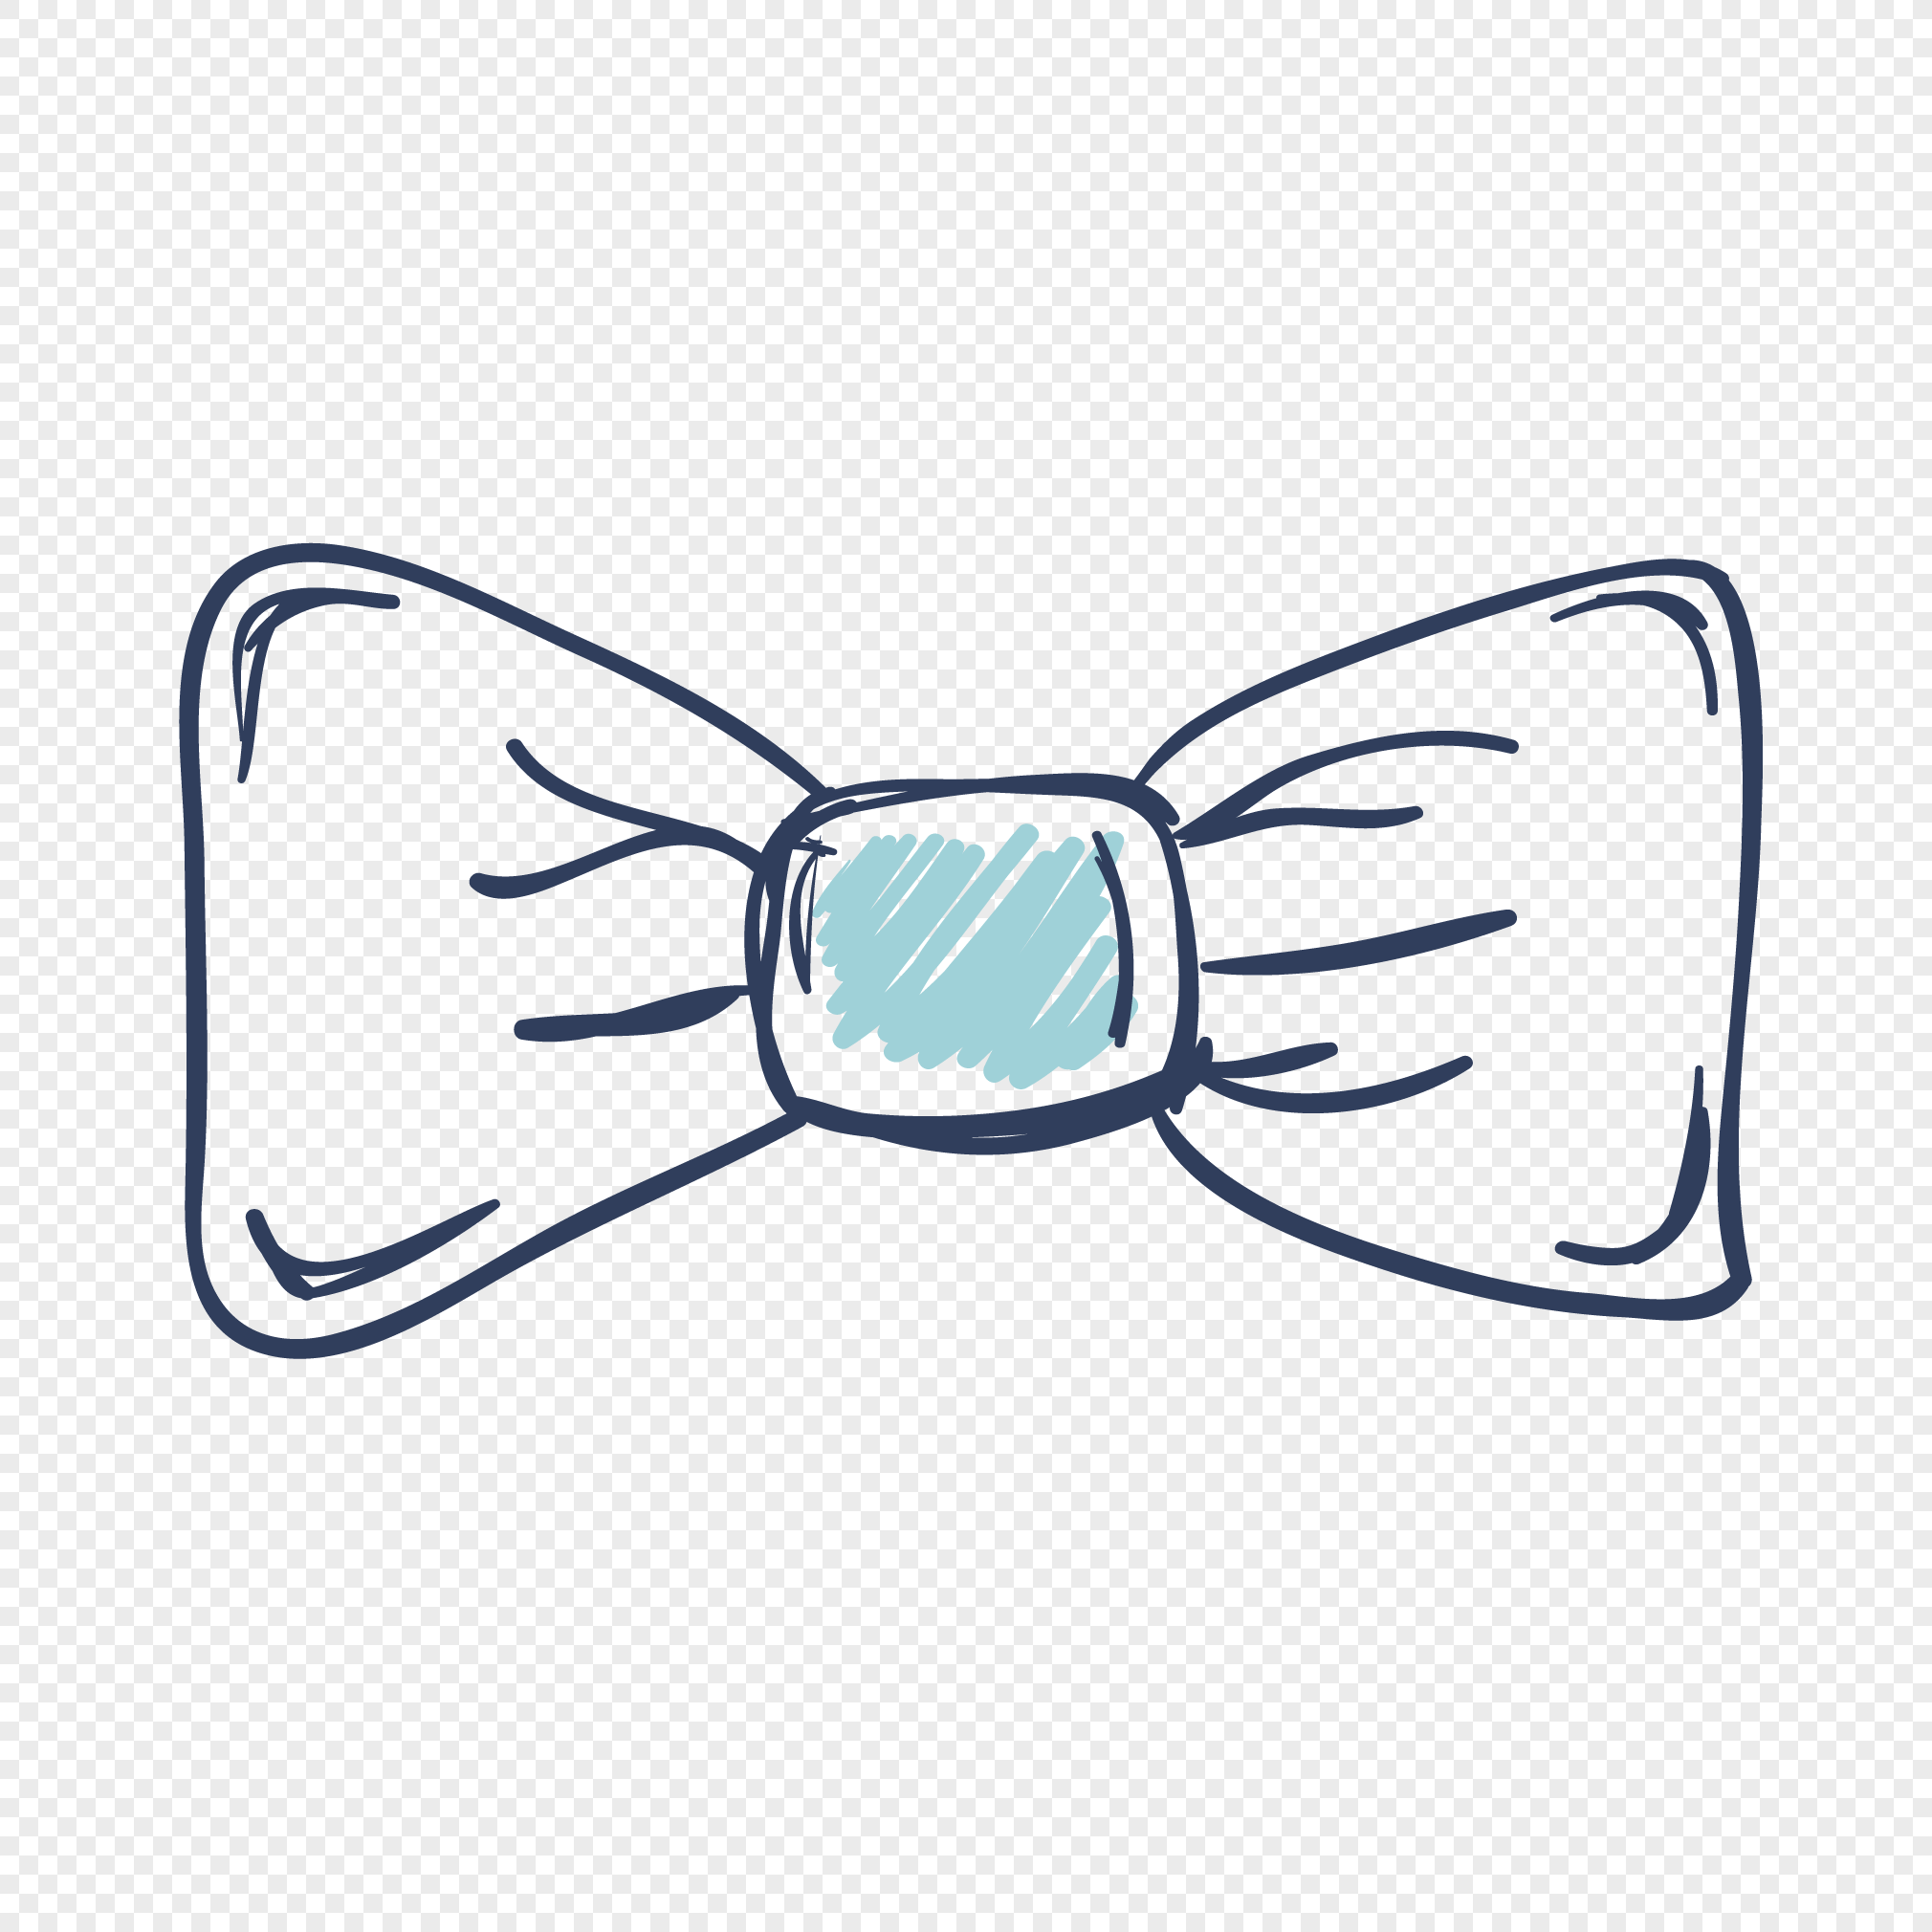 2020x2020 Bow Tie Vector Png Image Picture Free Download 400288073